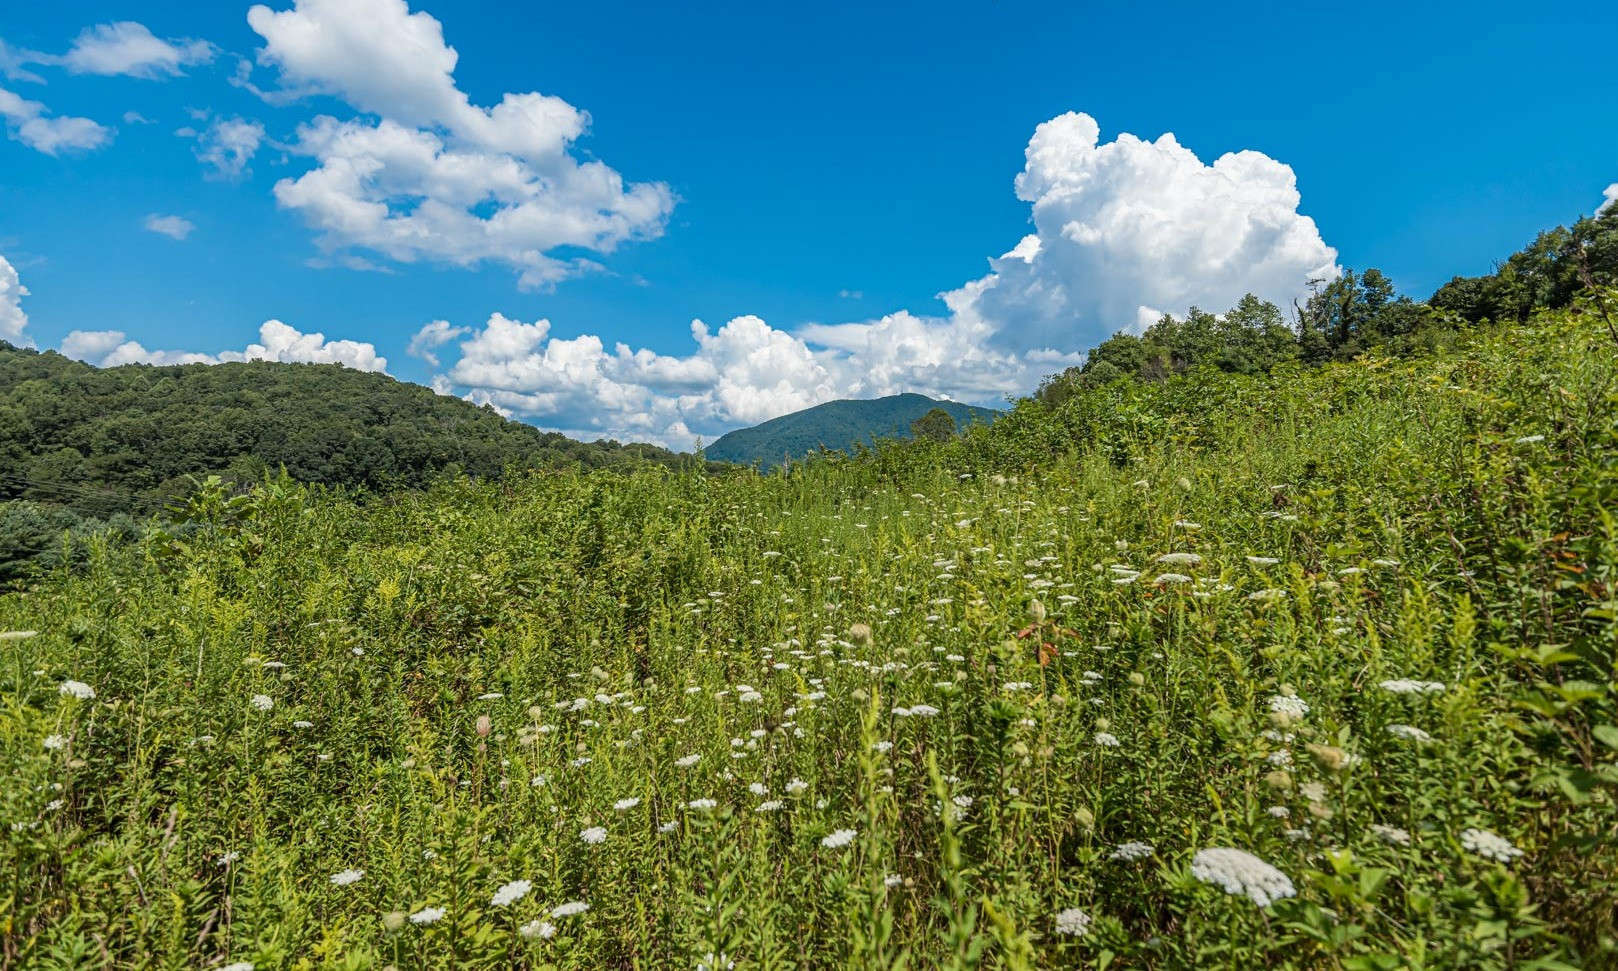 Located in the rolling hillsides of Ashe County, in the NC Mountains, this 6.7 acre tract offers the ideal location for the construction of your private North Carolina mountain cabin or home.